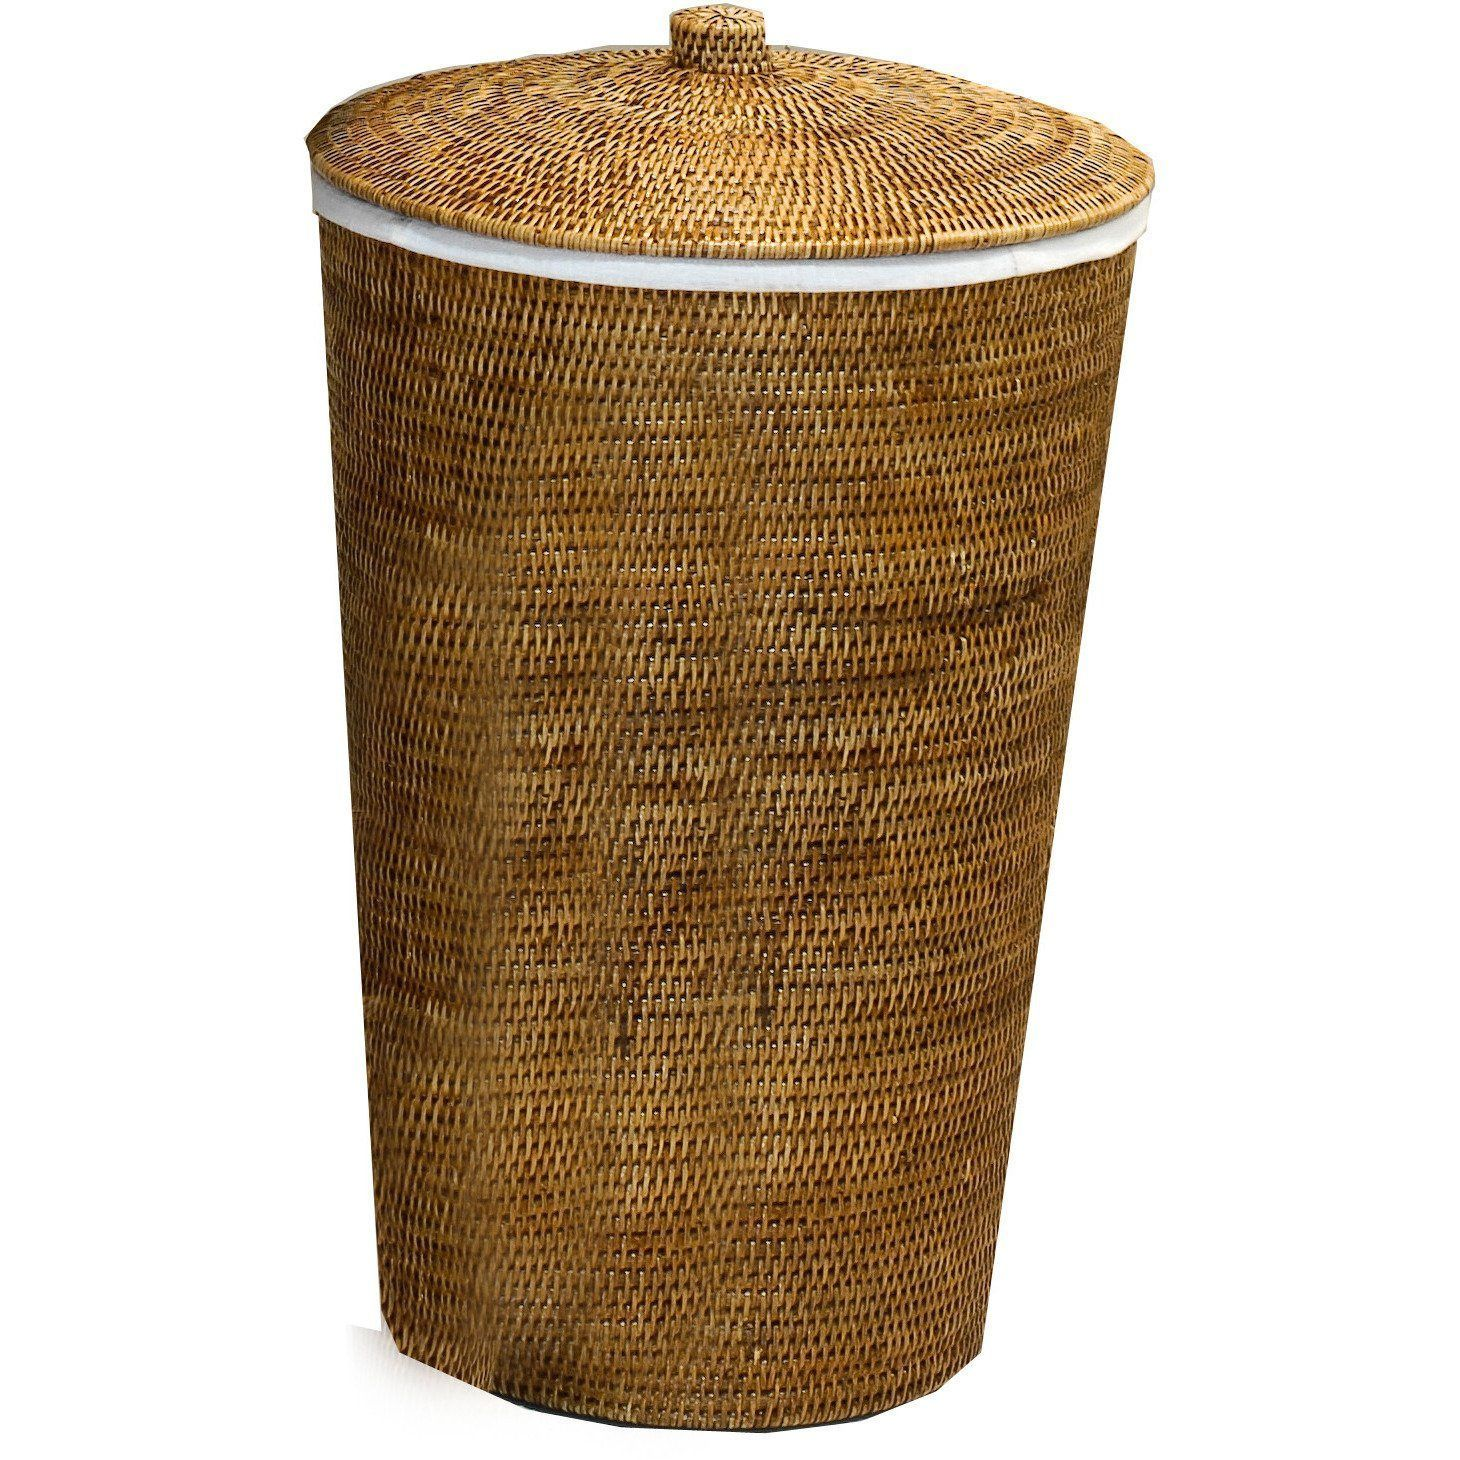 Basket Wb Laundry Hamper Basket Malacca With Lid 15 X 25 Inch